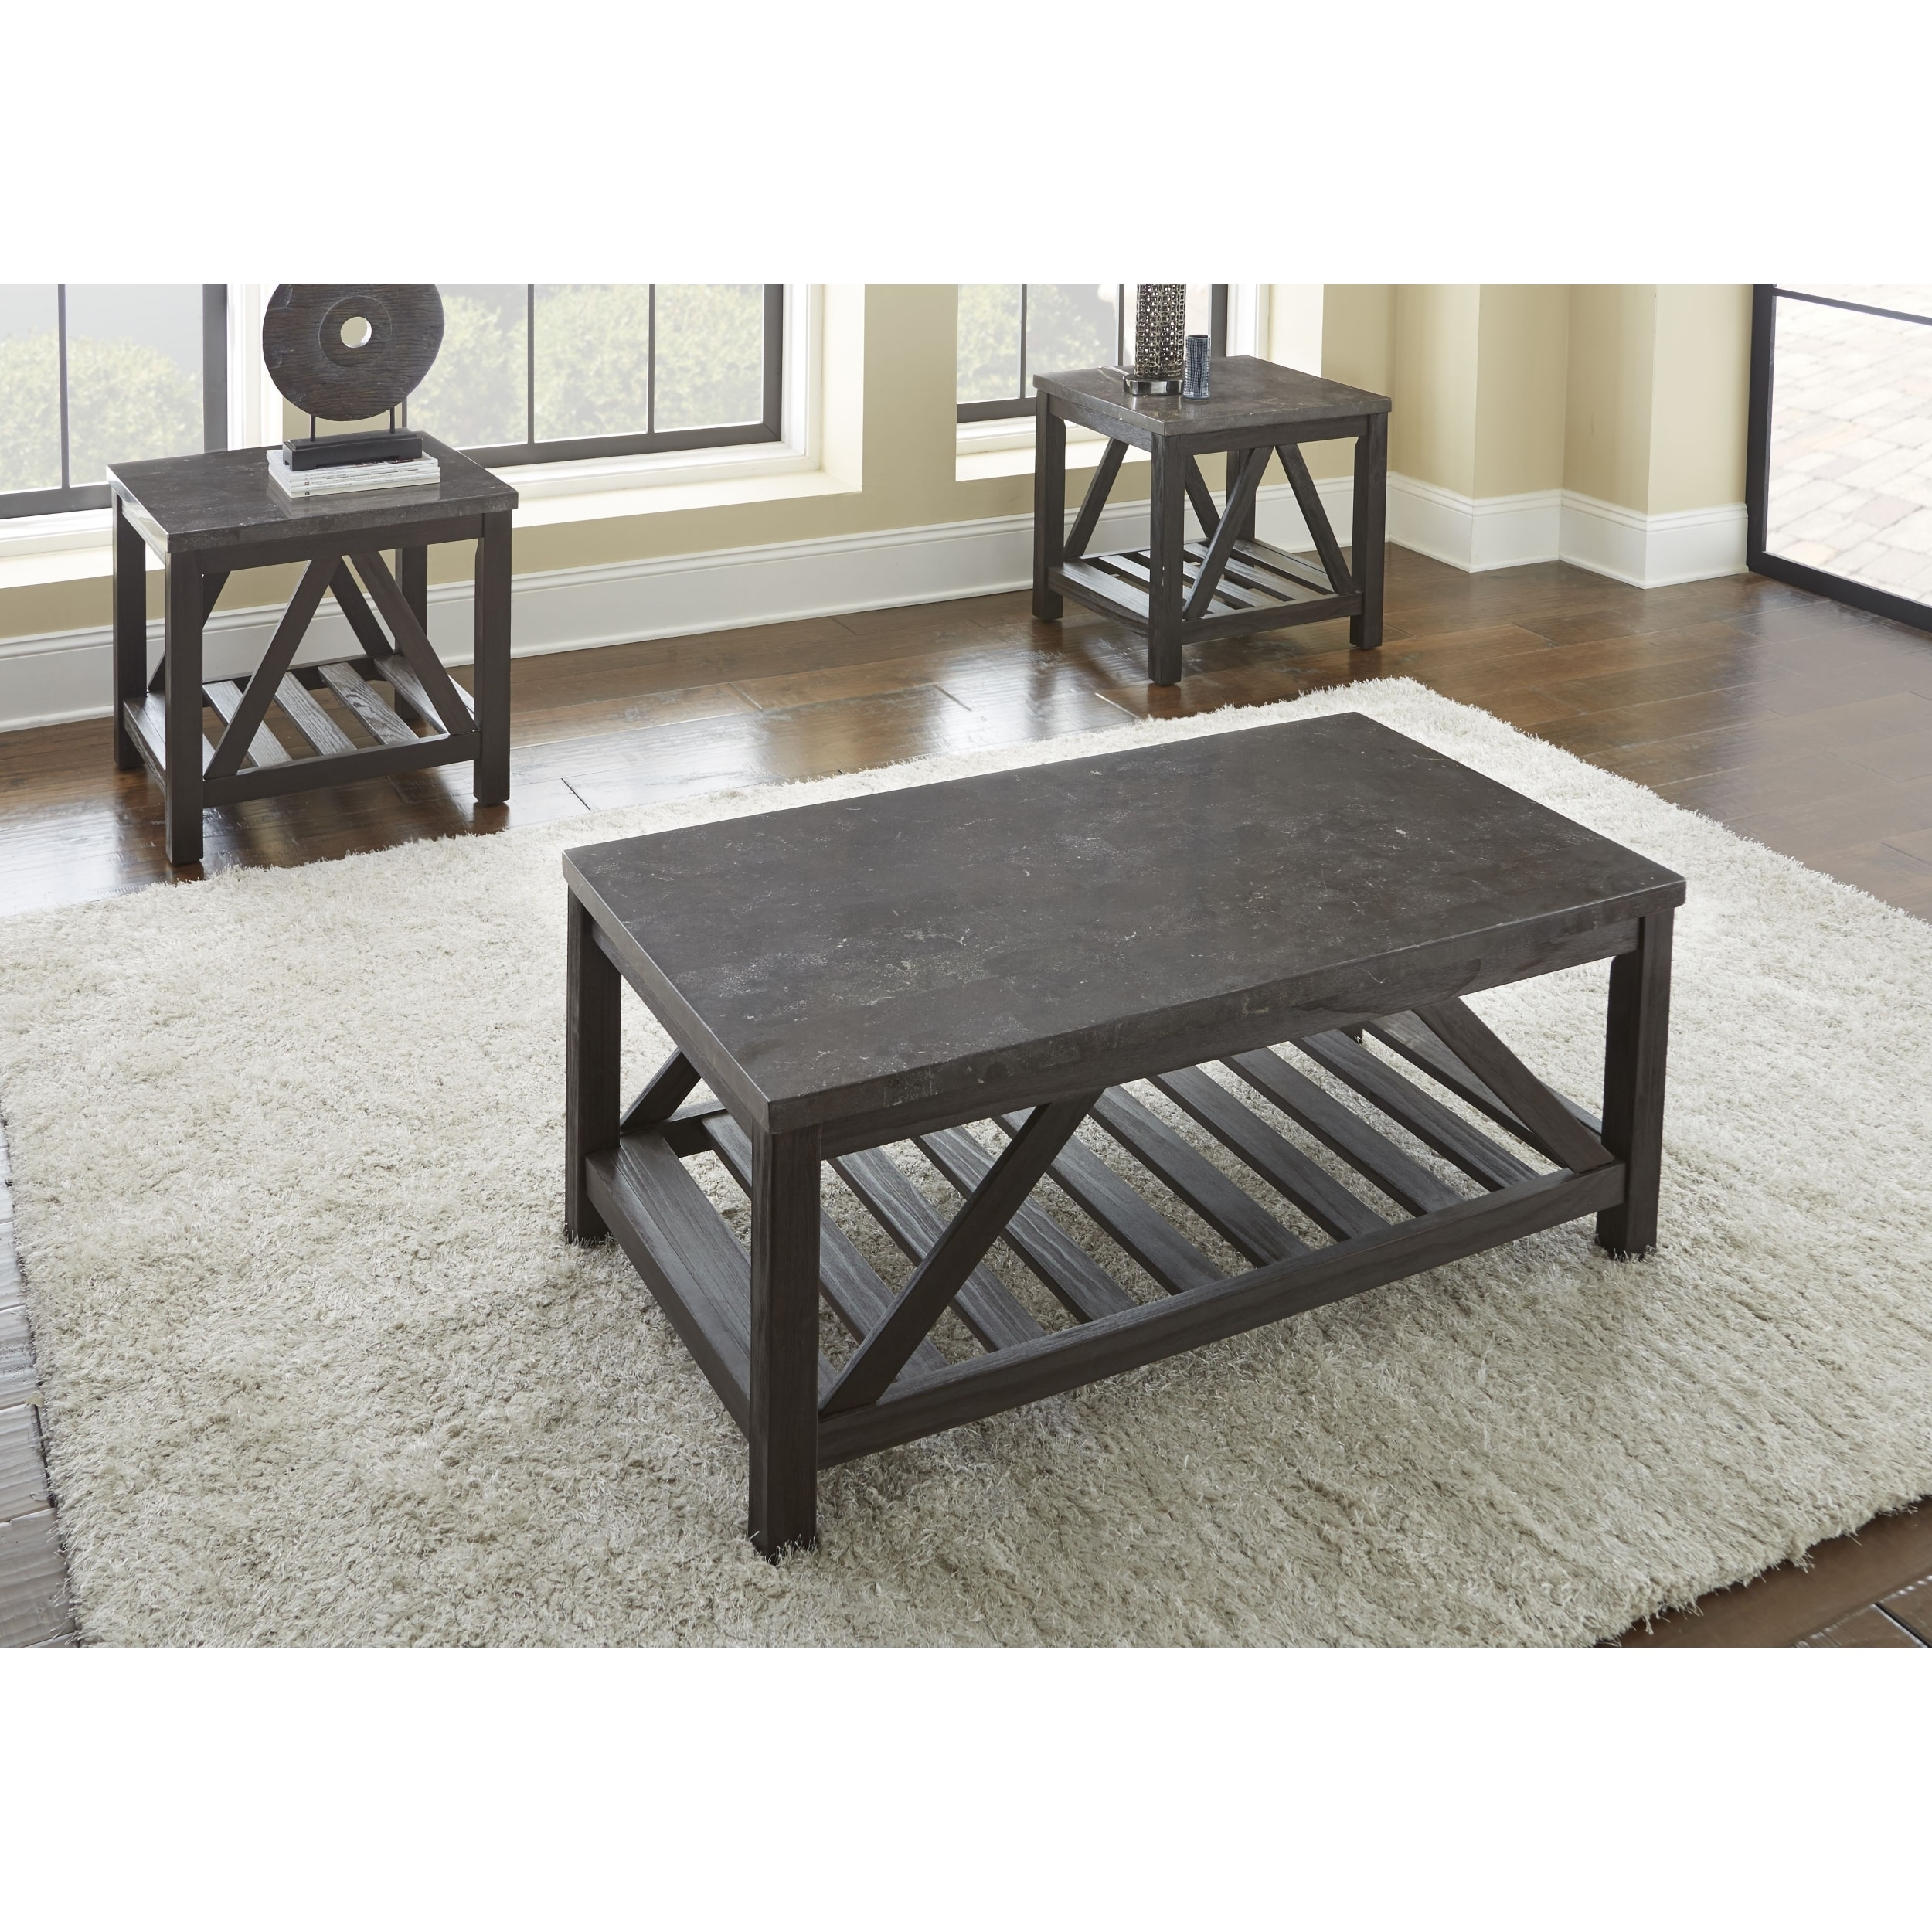 New Badin 48 Inch Rectangle Coffee Table With Bluestone Top By Greyson Living Free Shipping Today 17115995